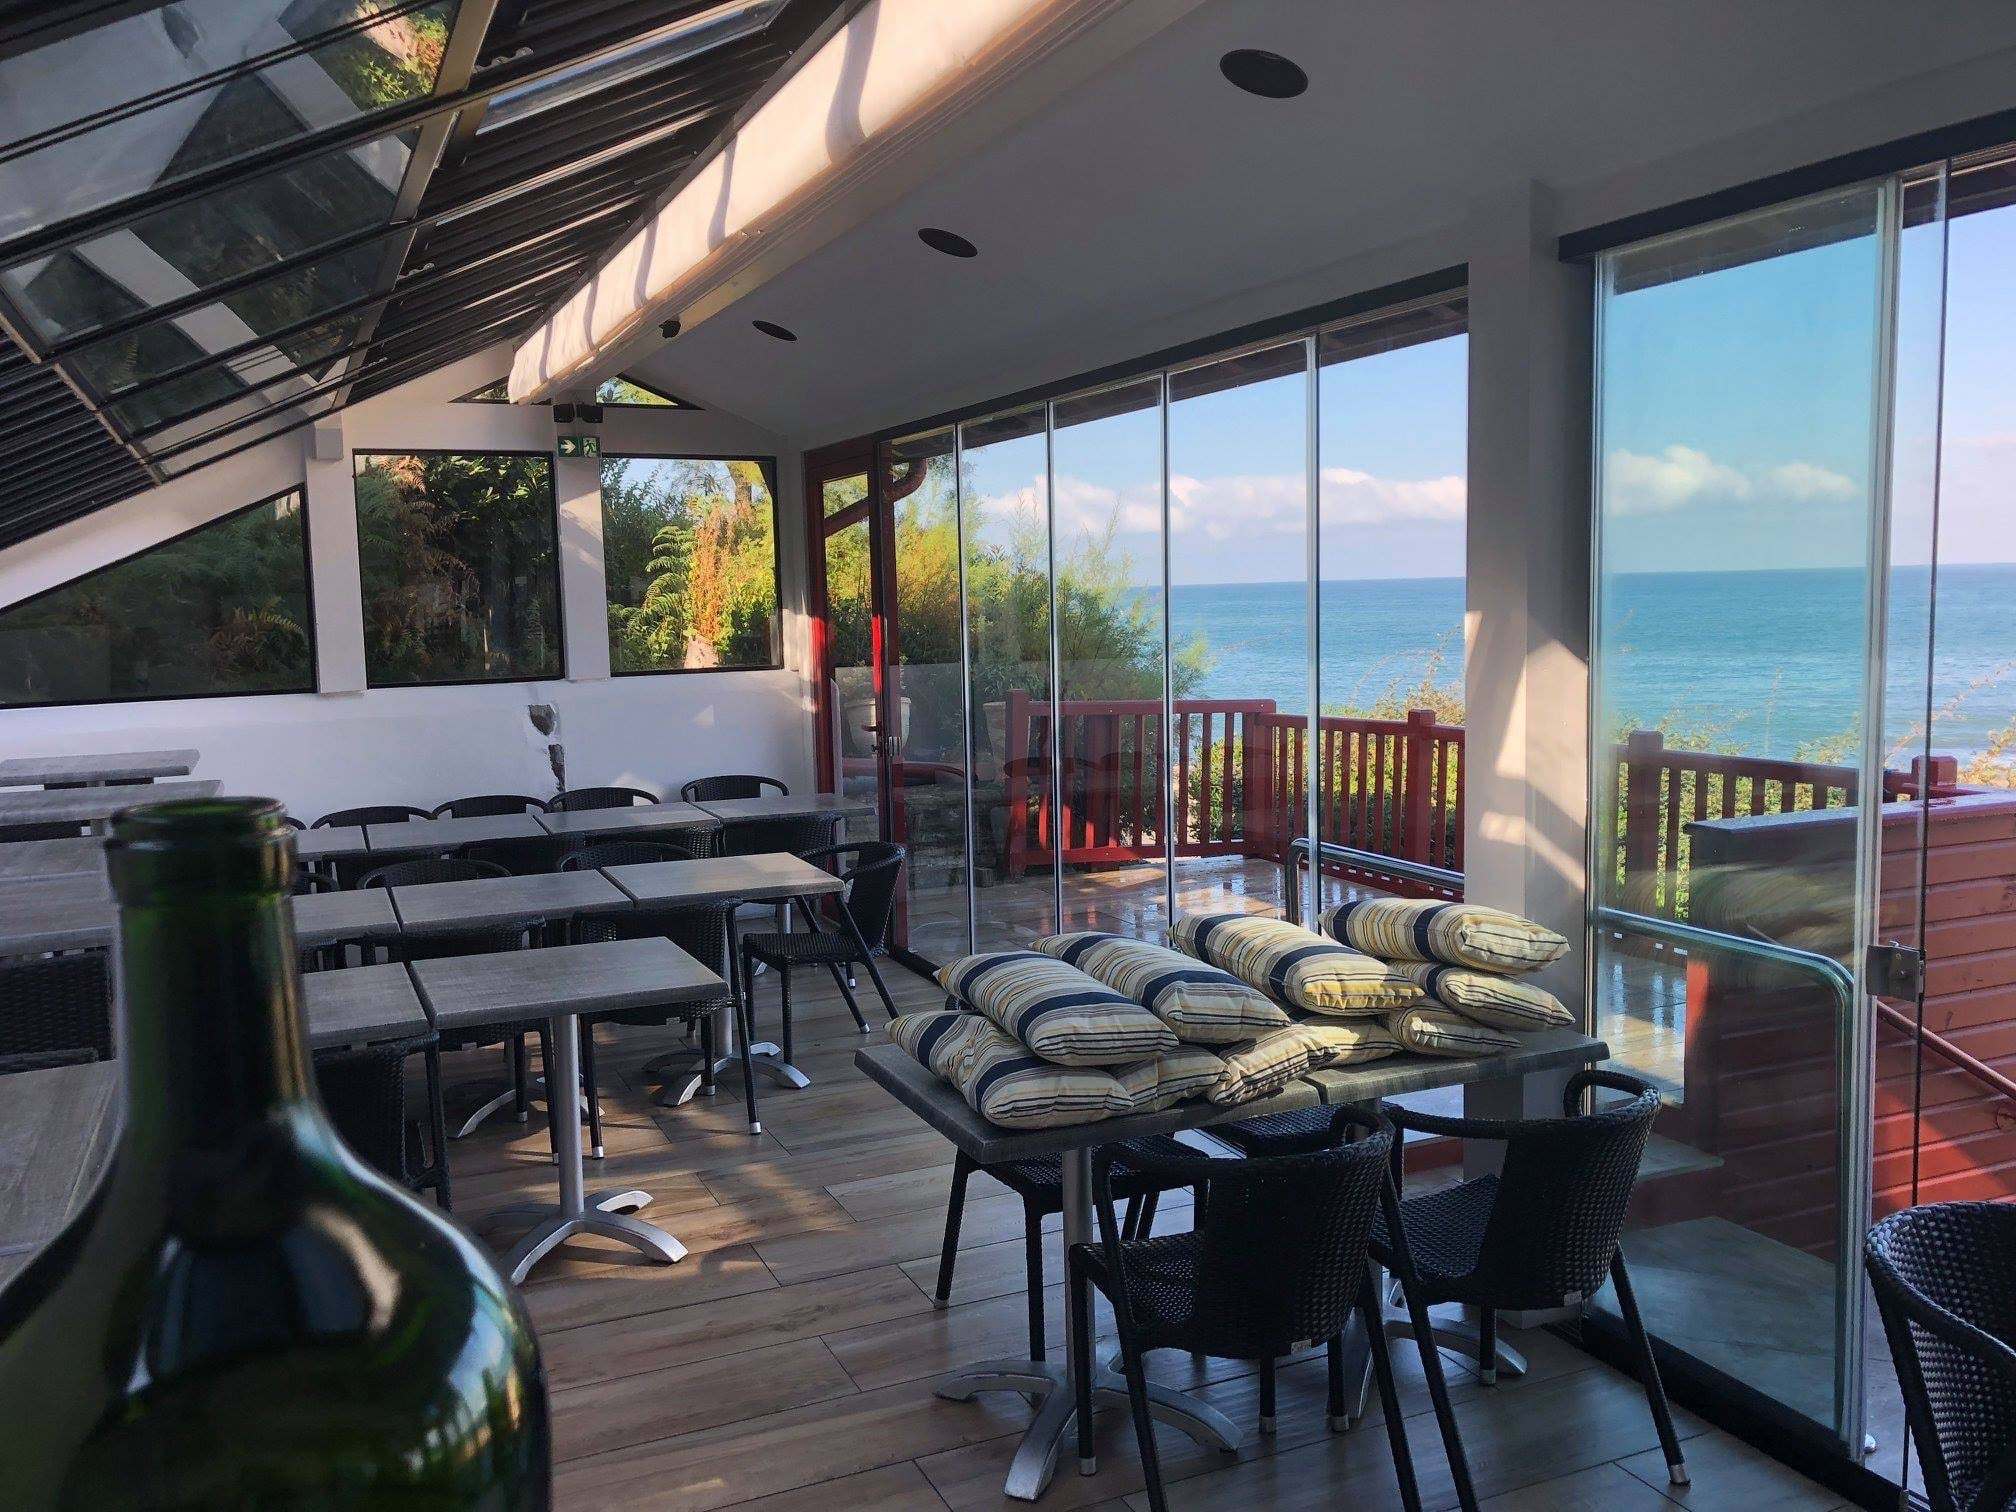 Retractable Roof Systems and Sunroom systems by crystaliaglass